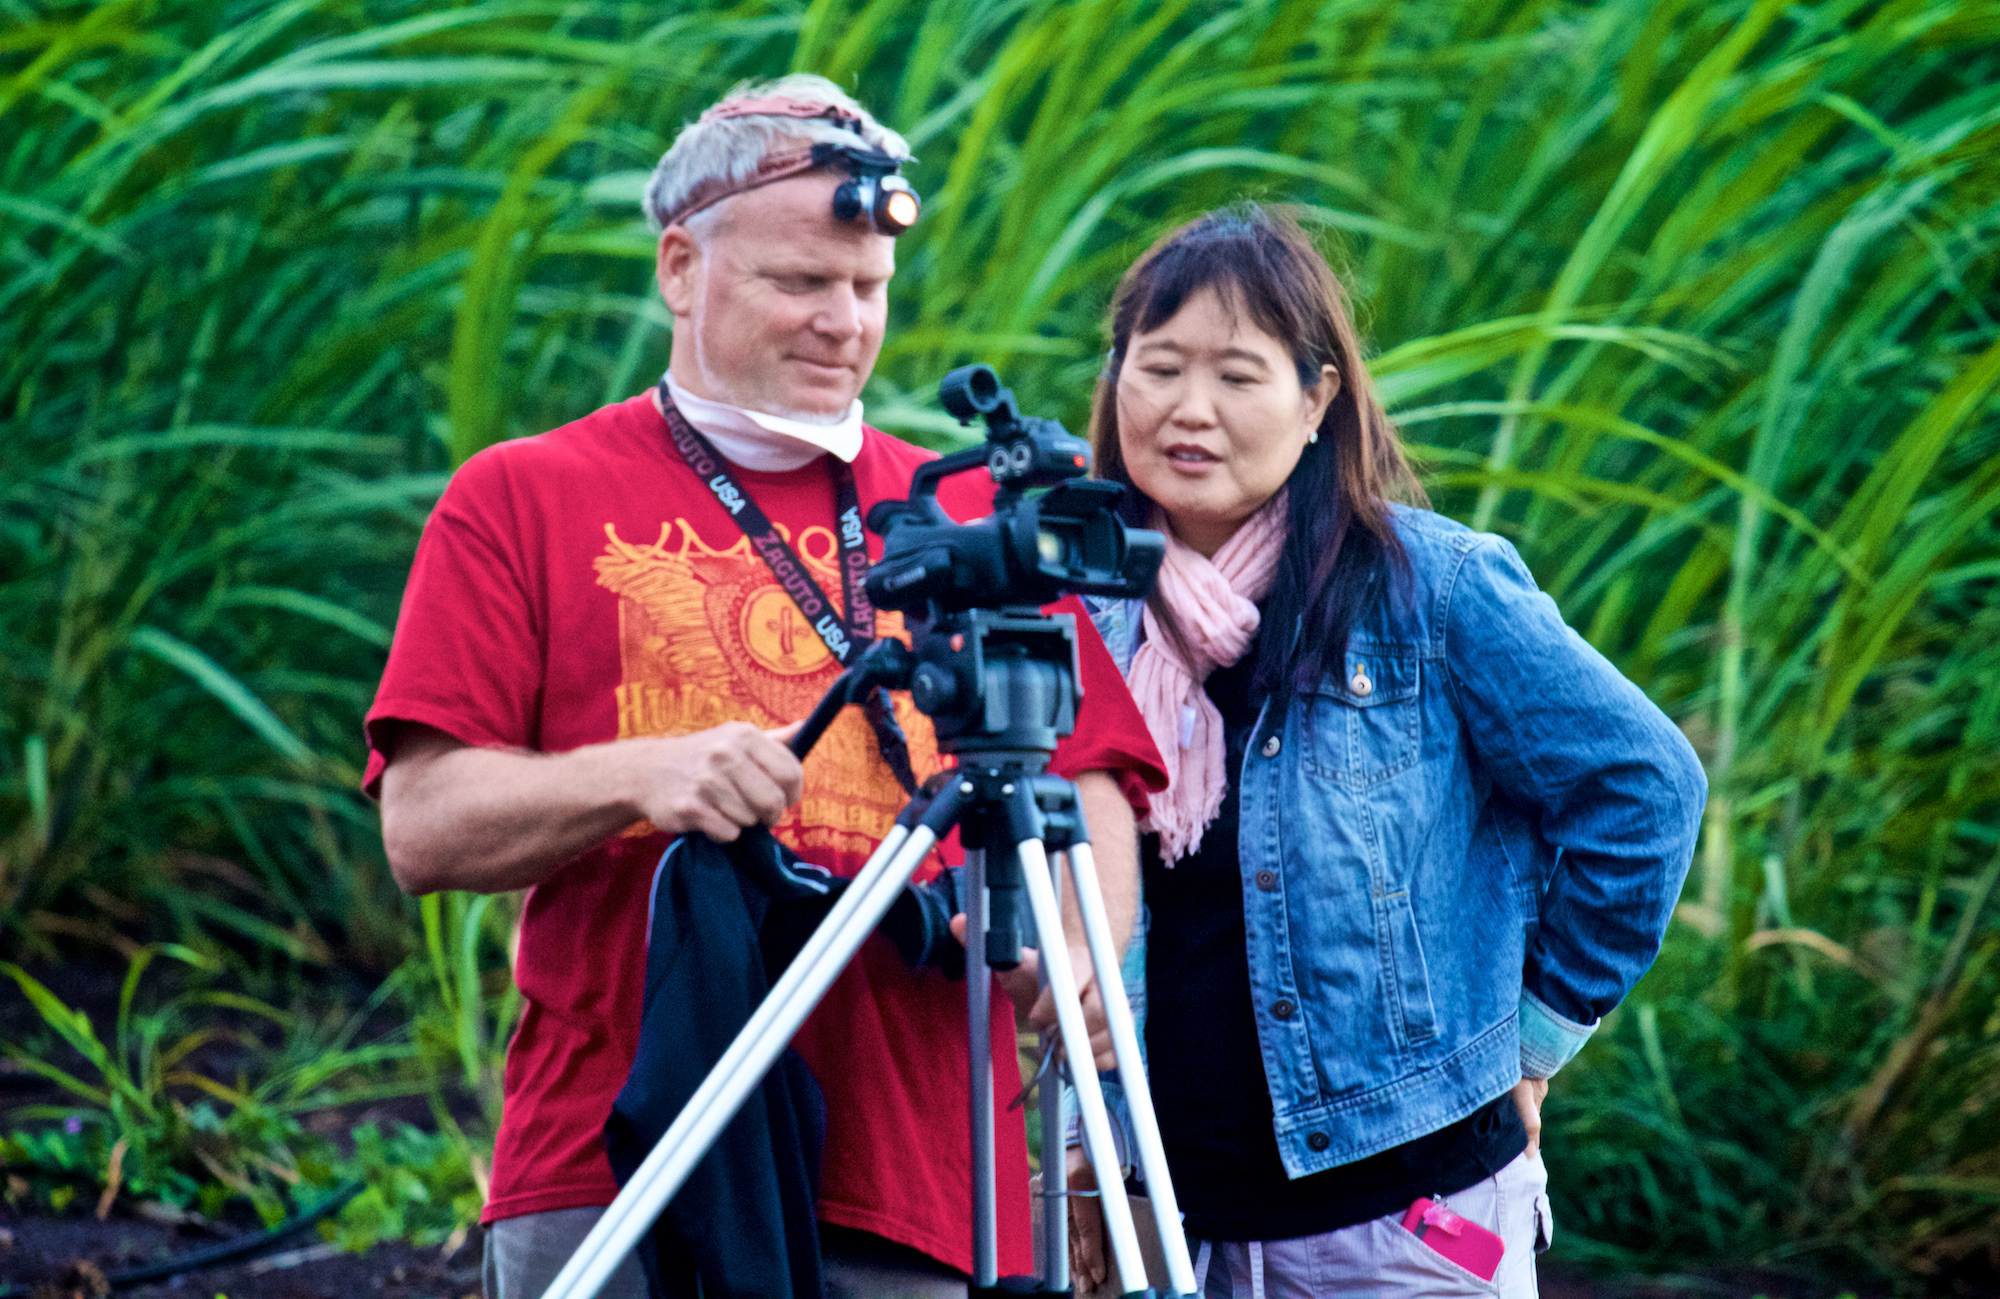 Cane fire: Filmmaker Danny Miller and Executive Producer Patsy Y. Iwasaki received permission from Hawaiian Commercial & Sugar Company on Maui to film a sugar cane burning before harvesting. Maui is the only location in Hawaii where sugar cane is grown for processing.